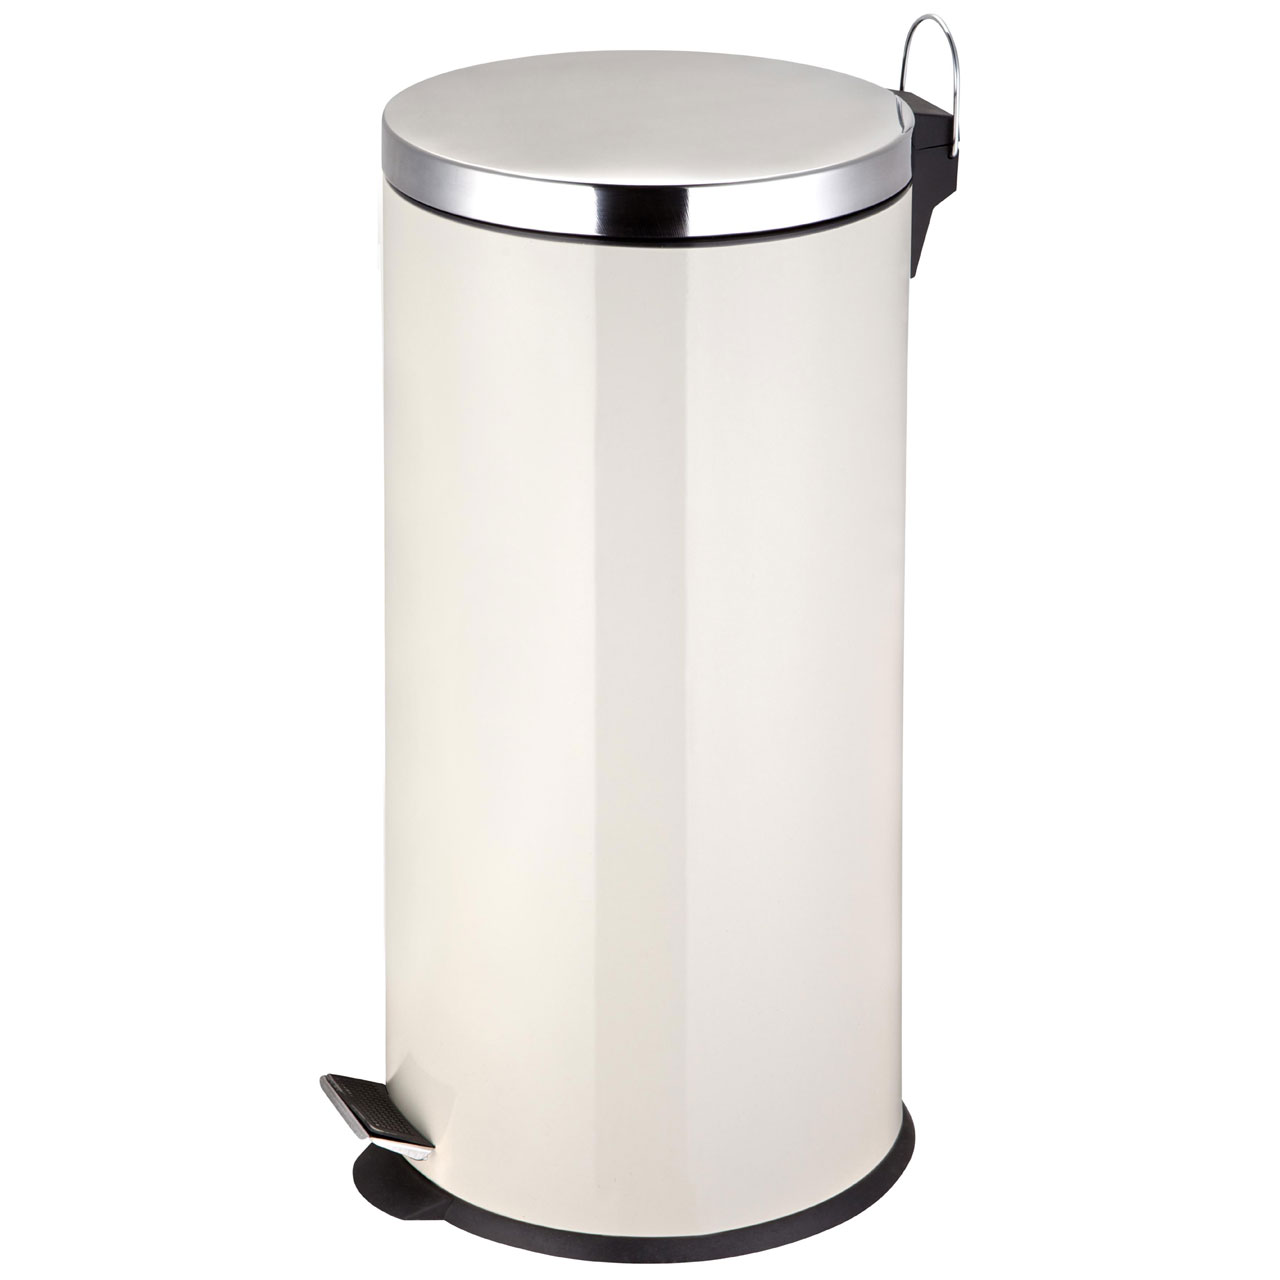 Black Kitchen Bin Sale: Round 30 Litre Pedal Kitchen Waste Bin Stainless Steel